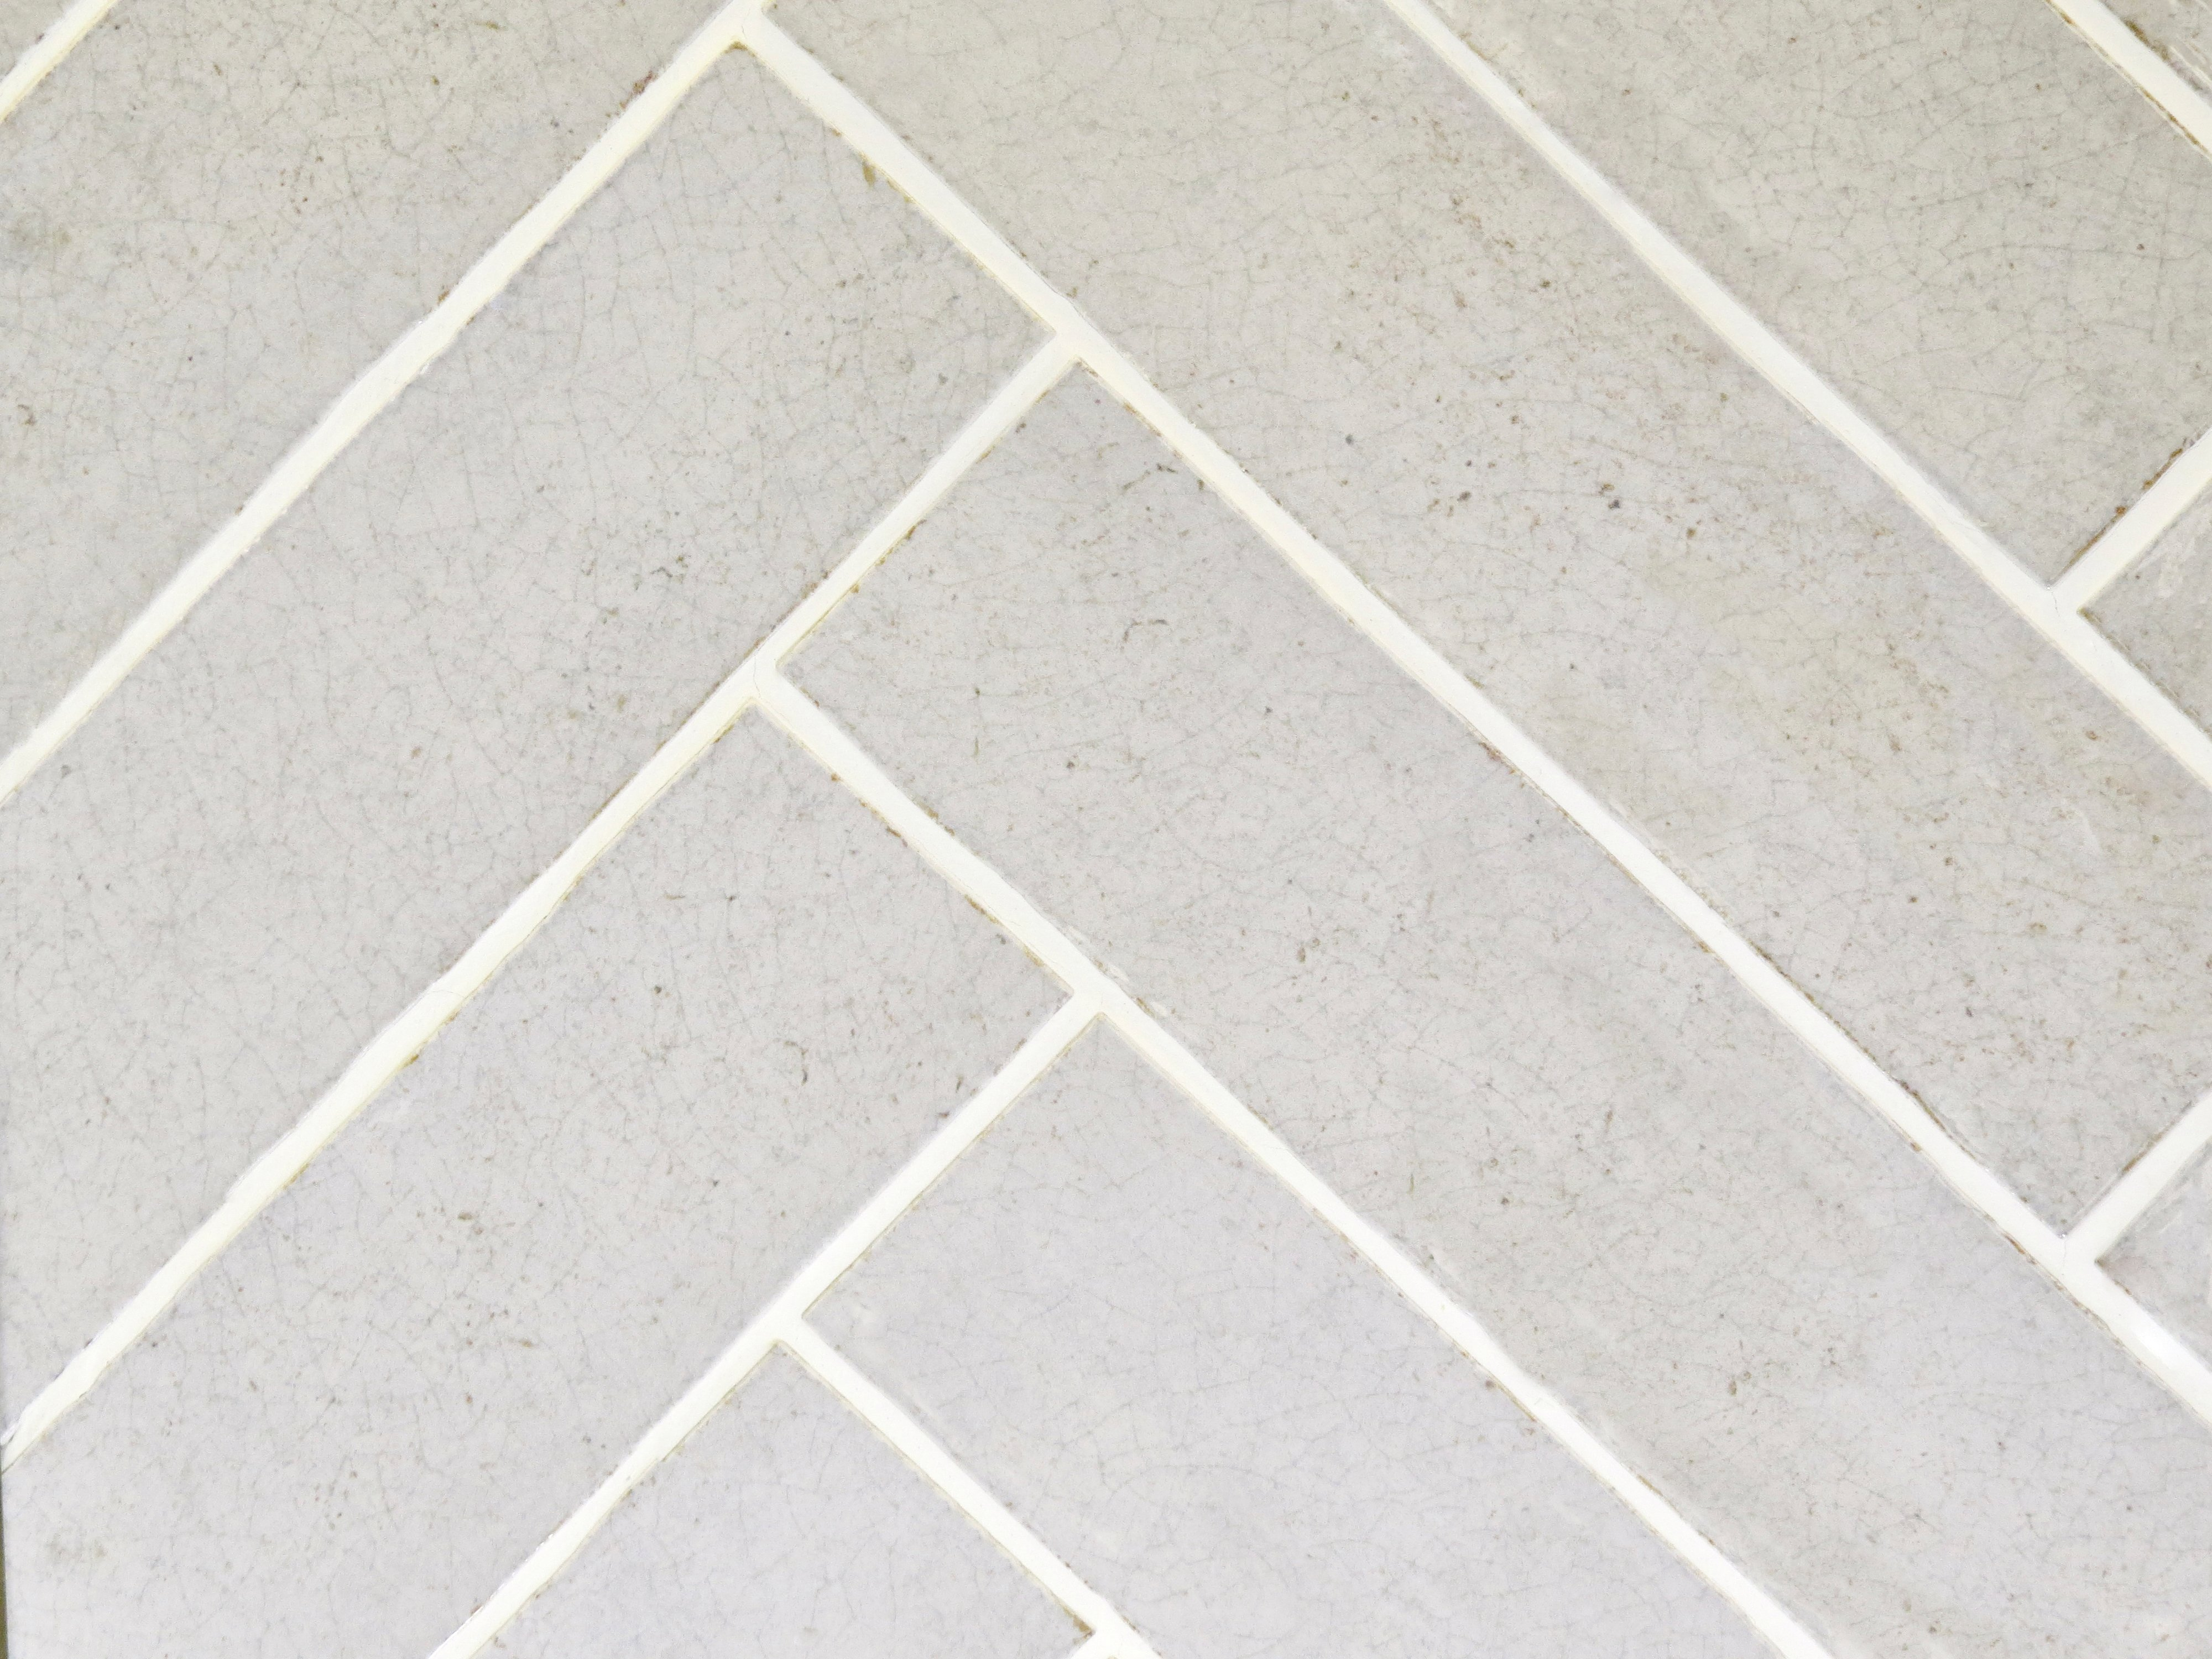 Maiolica Crackled Tender Grey 3x12 Pcc Tile Professional